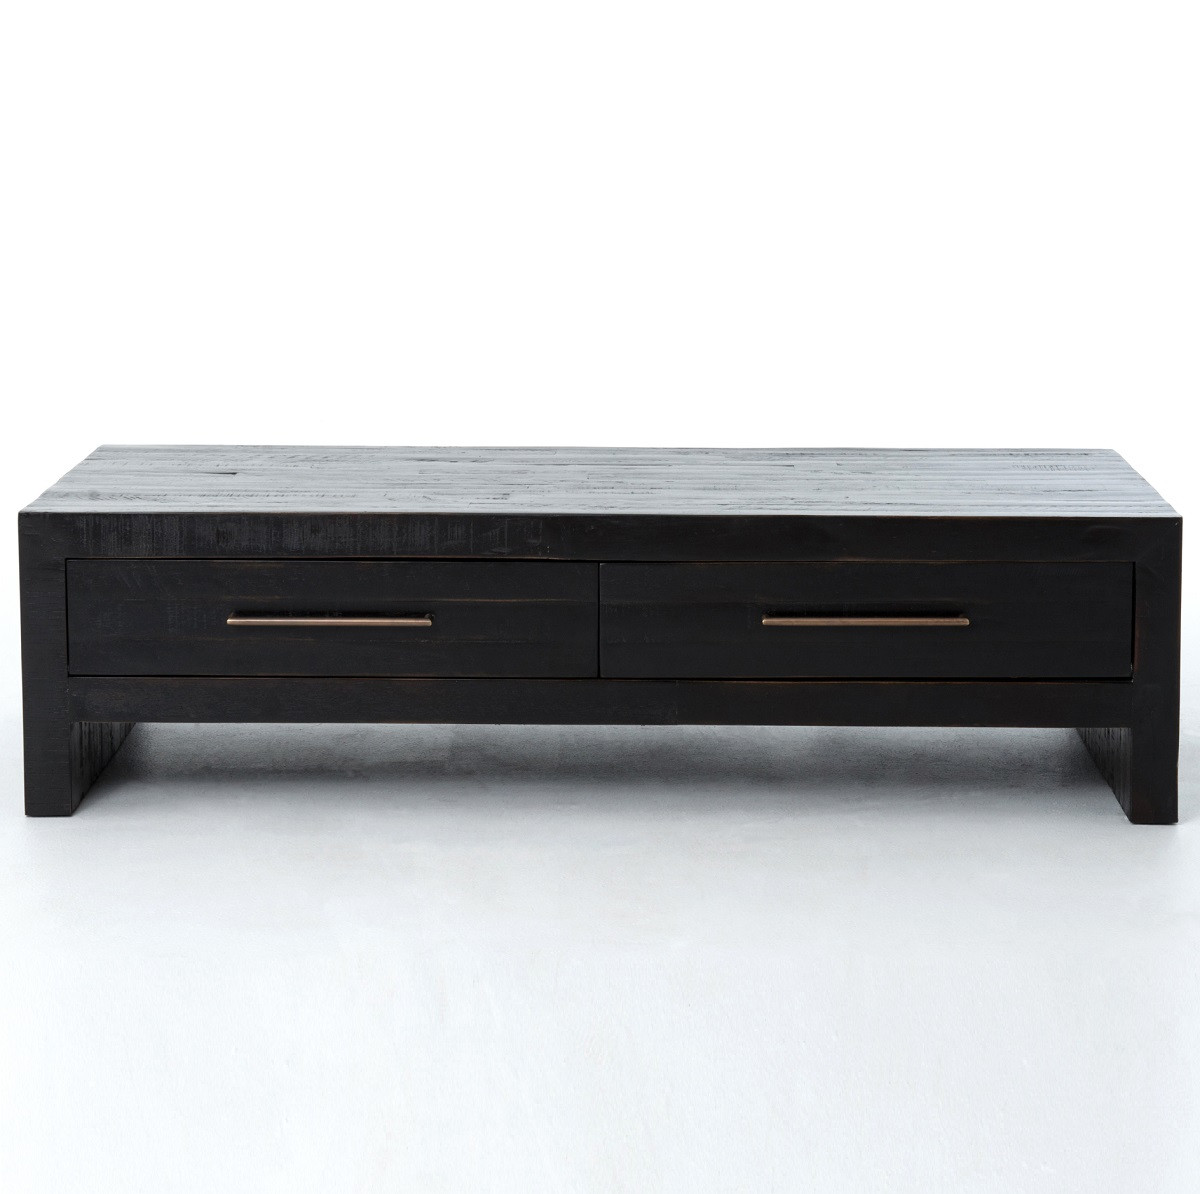 Suffolk Simplicity Reclaimed Wood Square Industrial Coffee: Burnished Black Reclaimed Pine Wood Coffee Table With